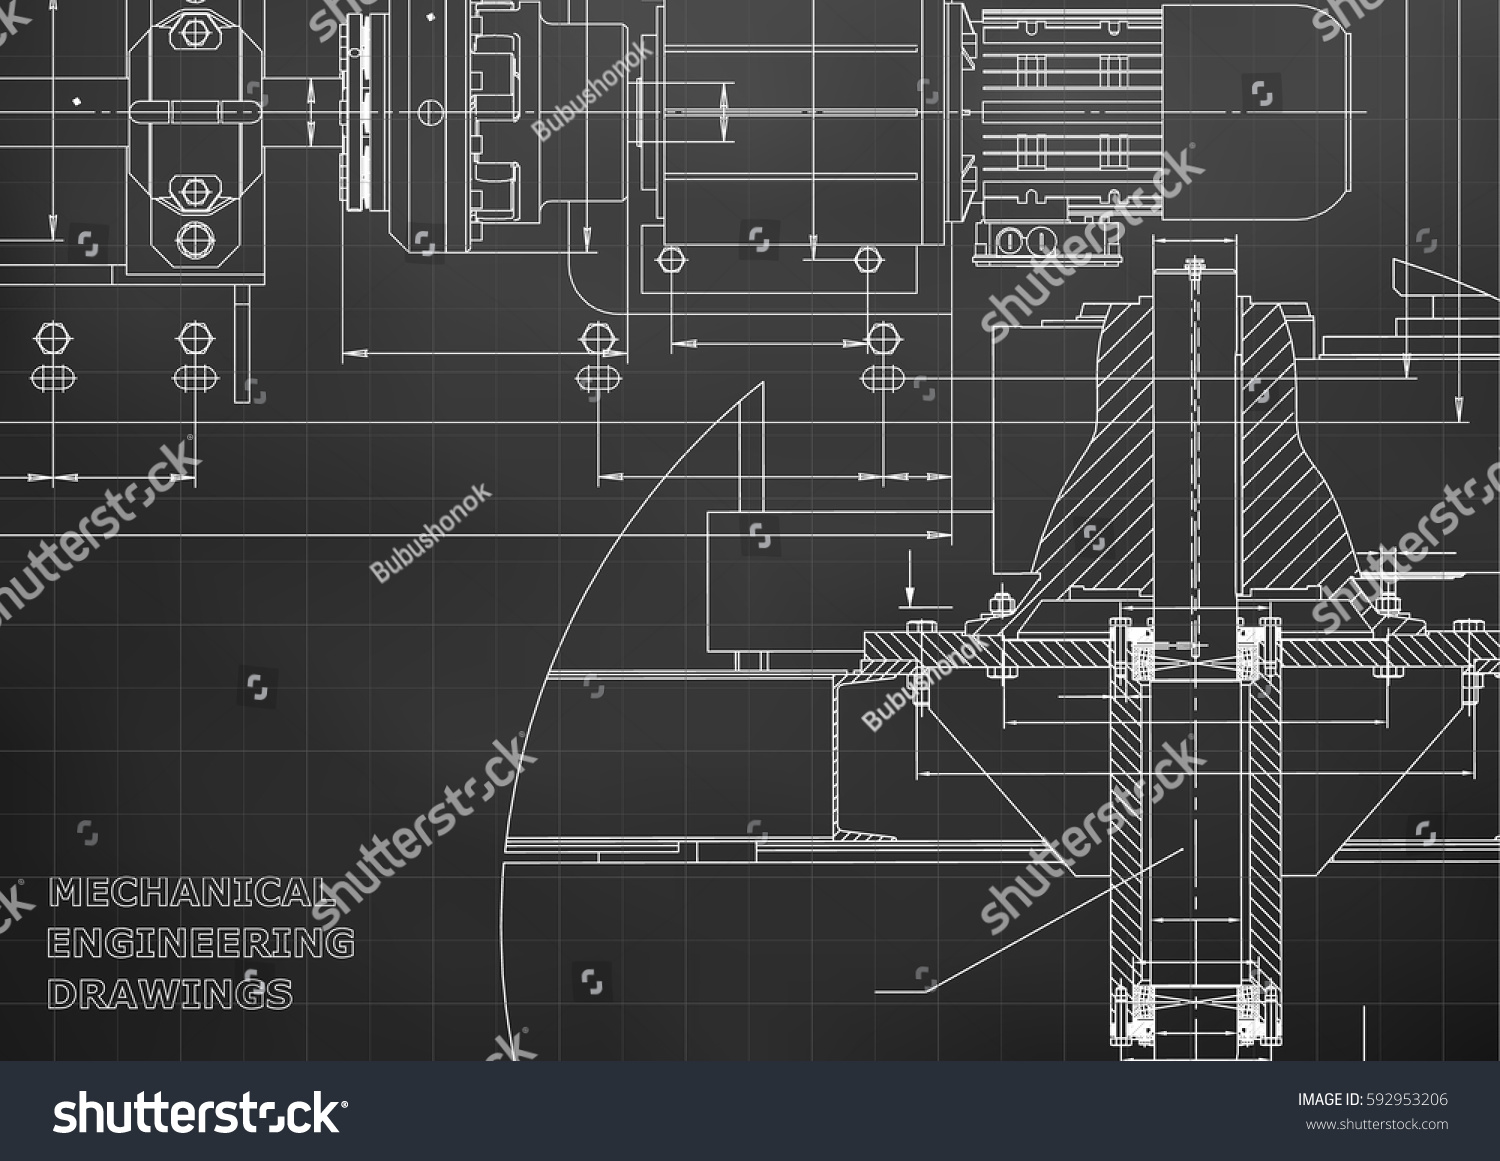 Engineering Backgrounds Mechanical Engineering Drawings ...